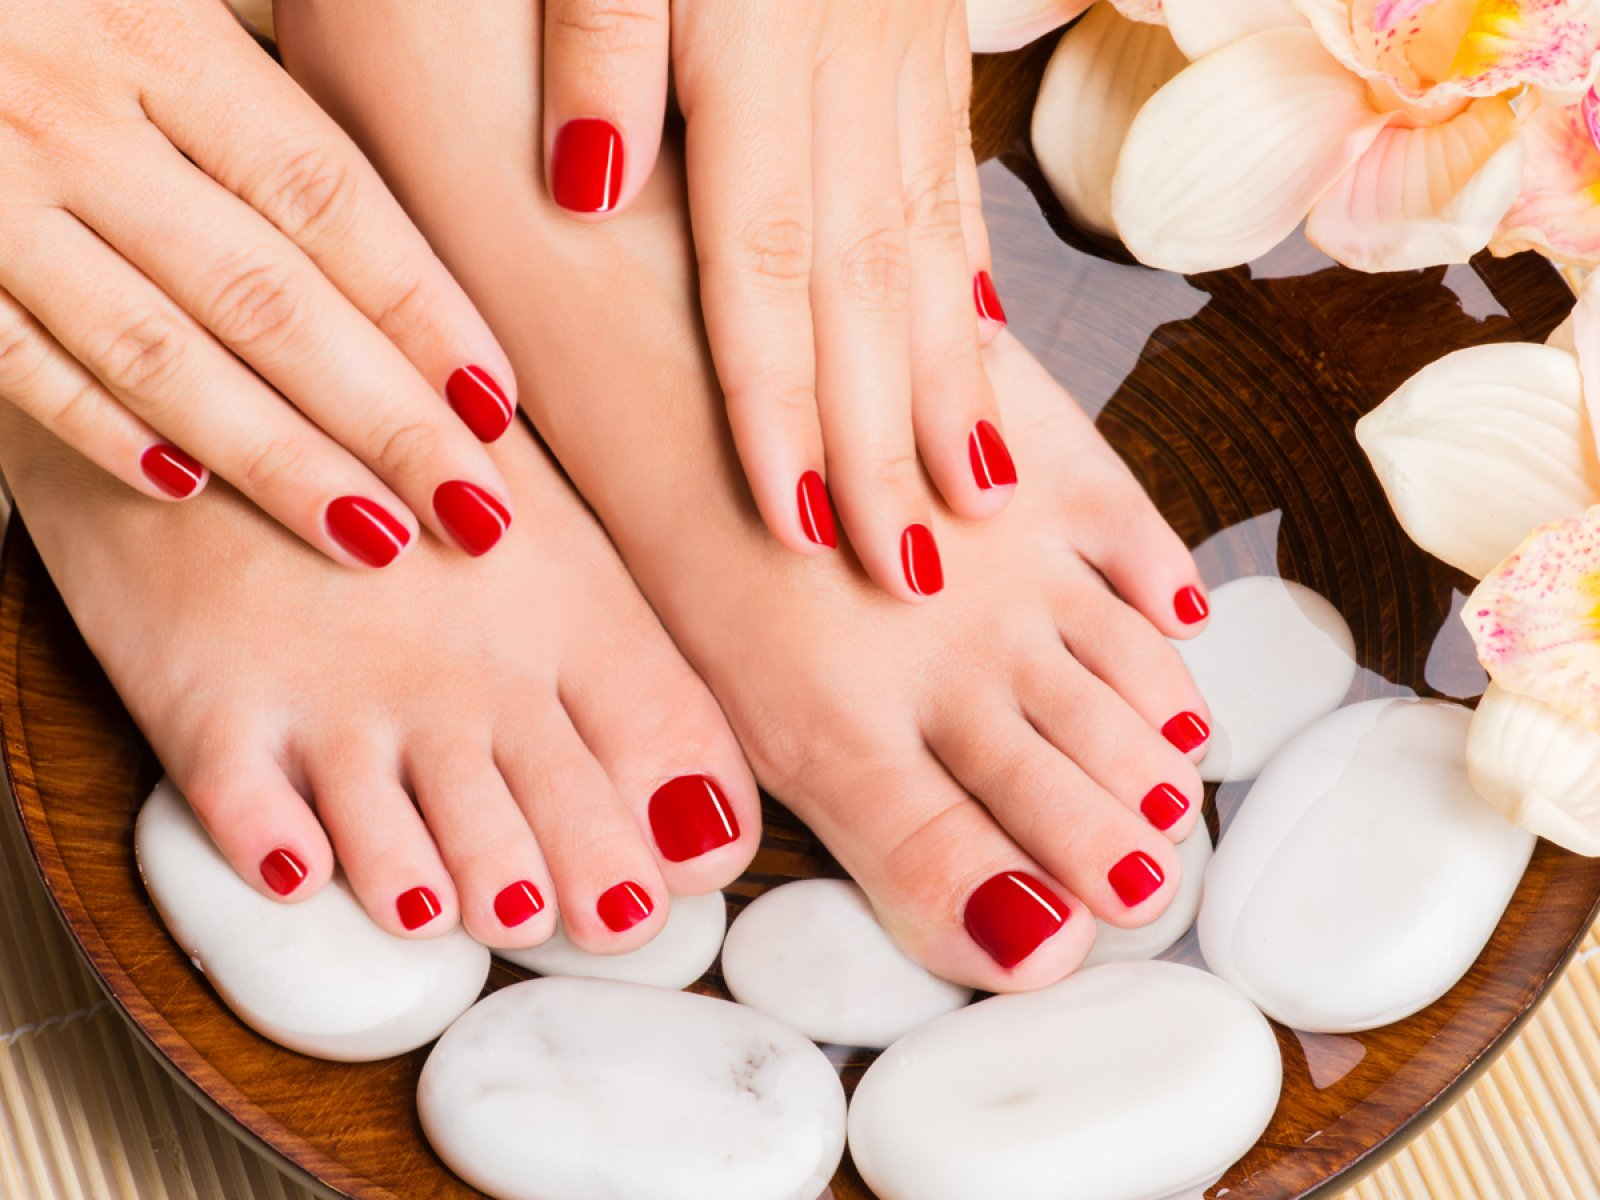 Pedicure Procedure Step by Step At Home